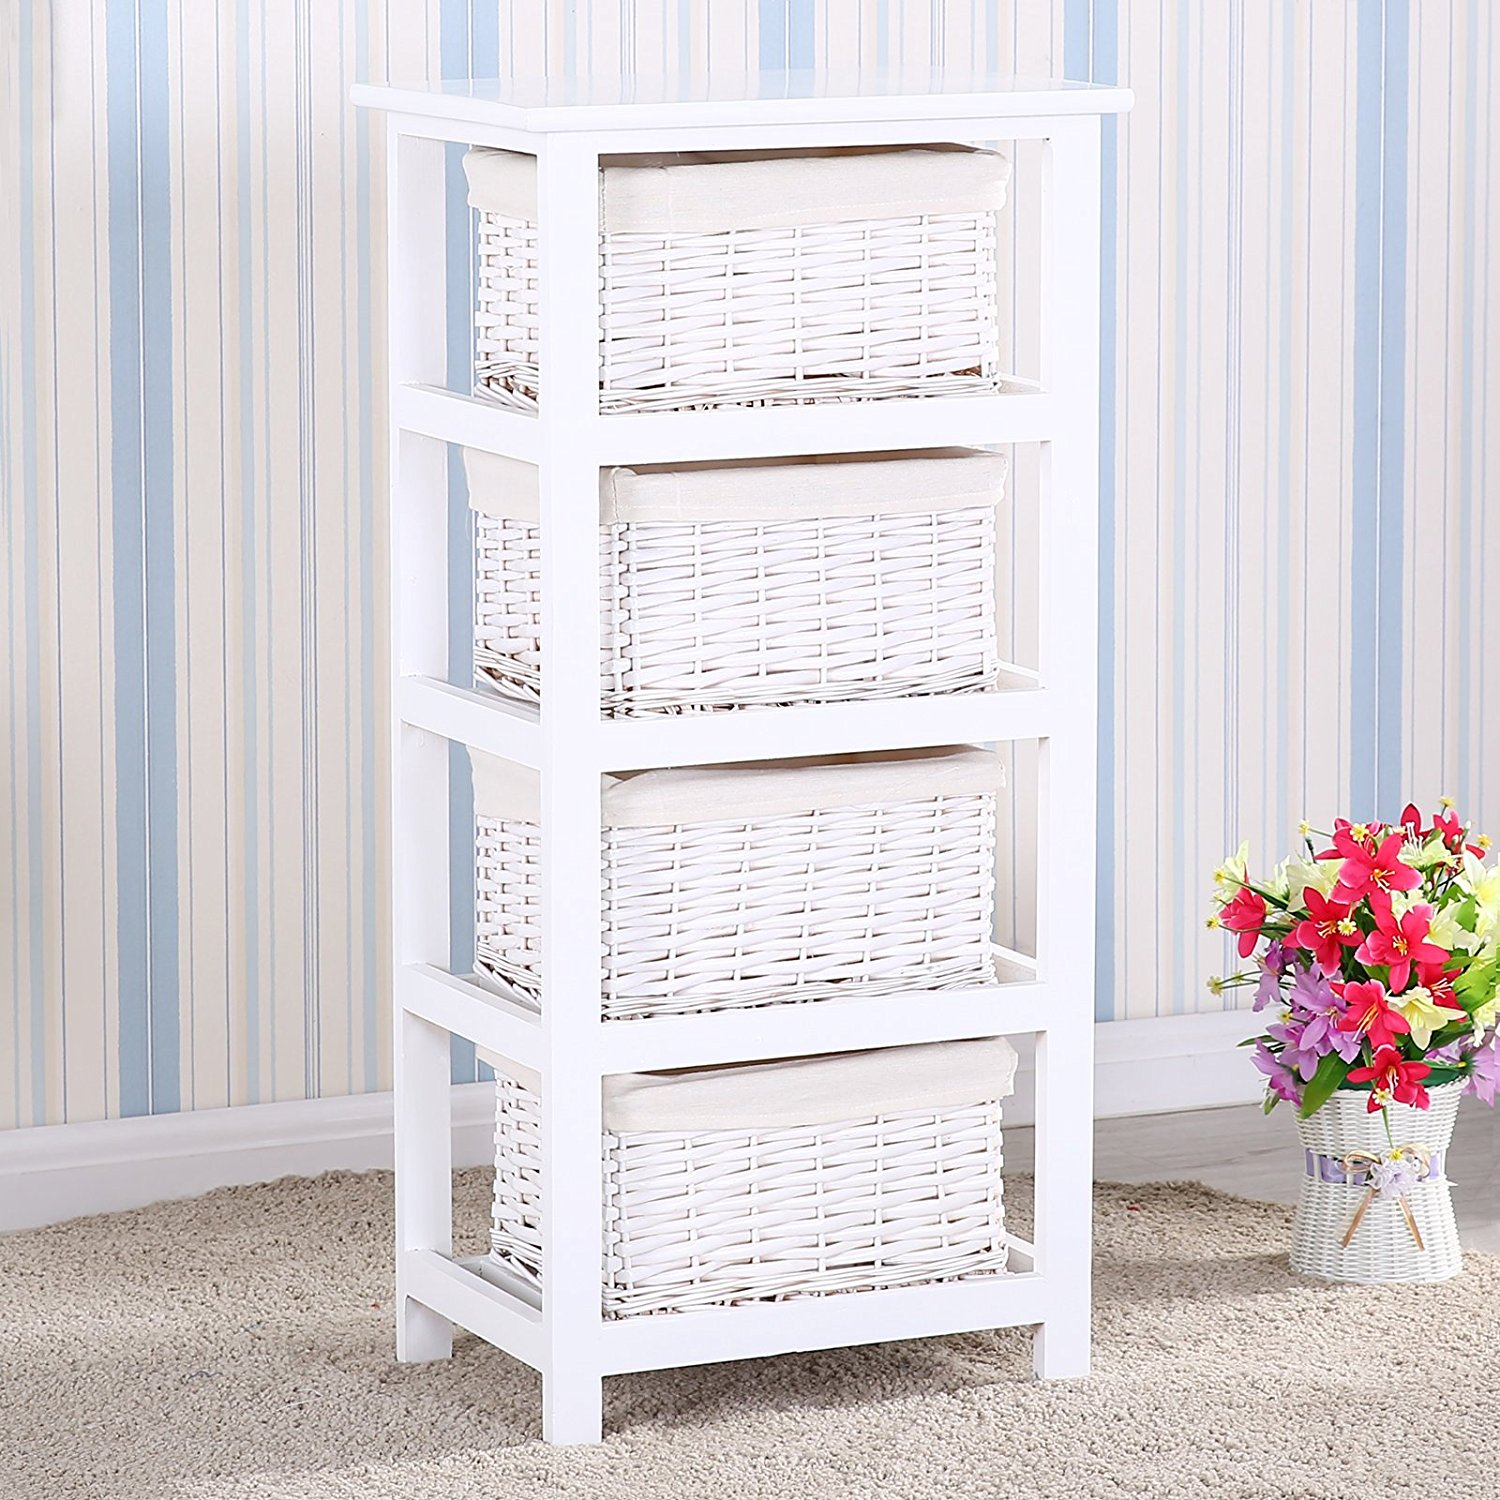 Uenjoy Retro White Nightstand End Side Bedside Table w/4 Wicker Basket Storage Wood